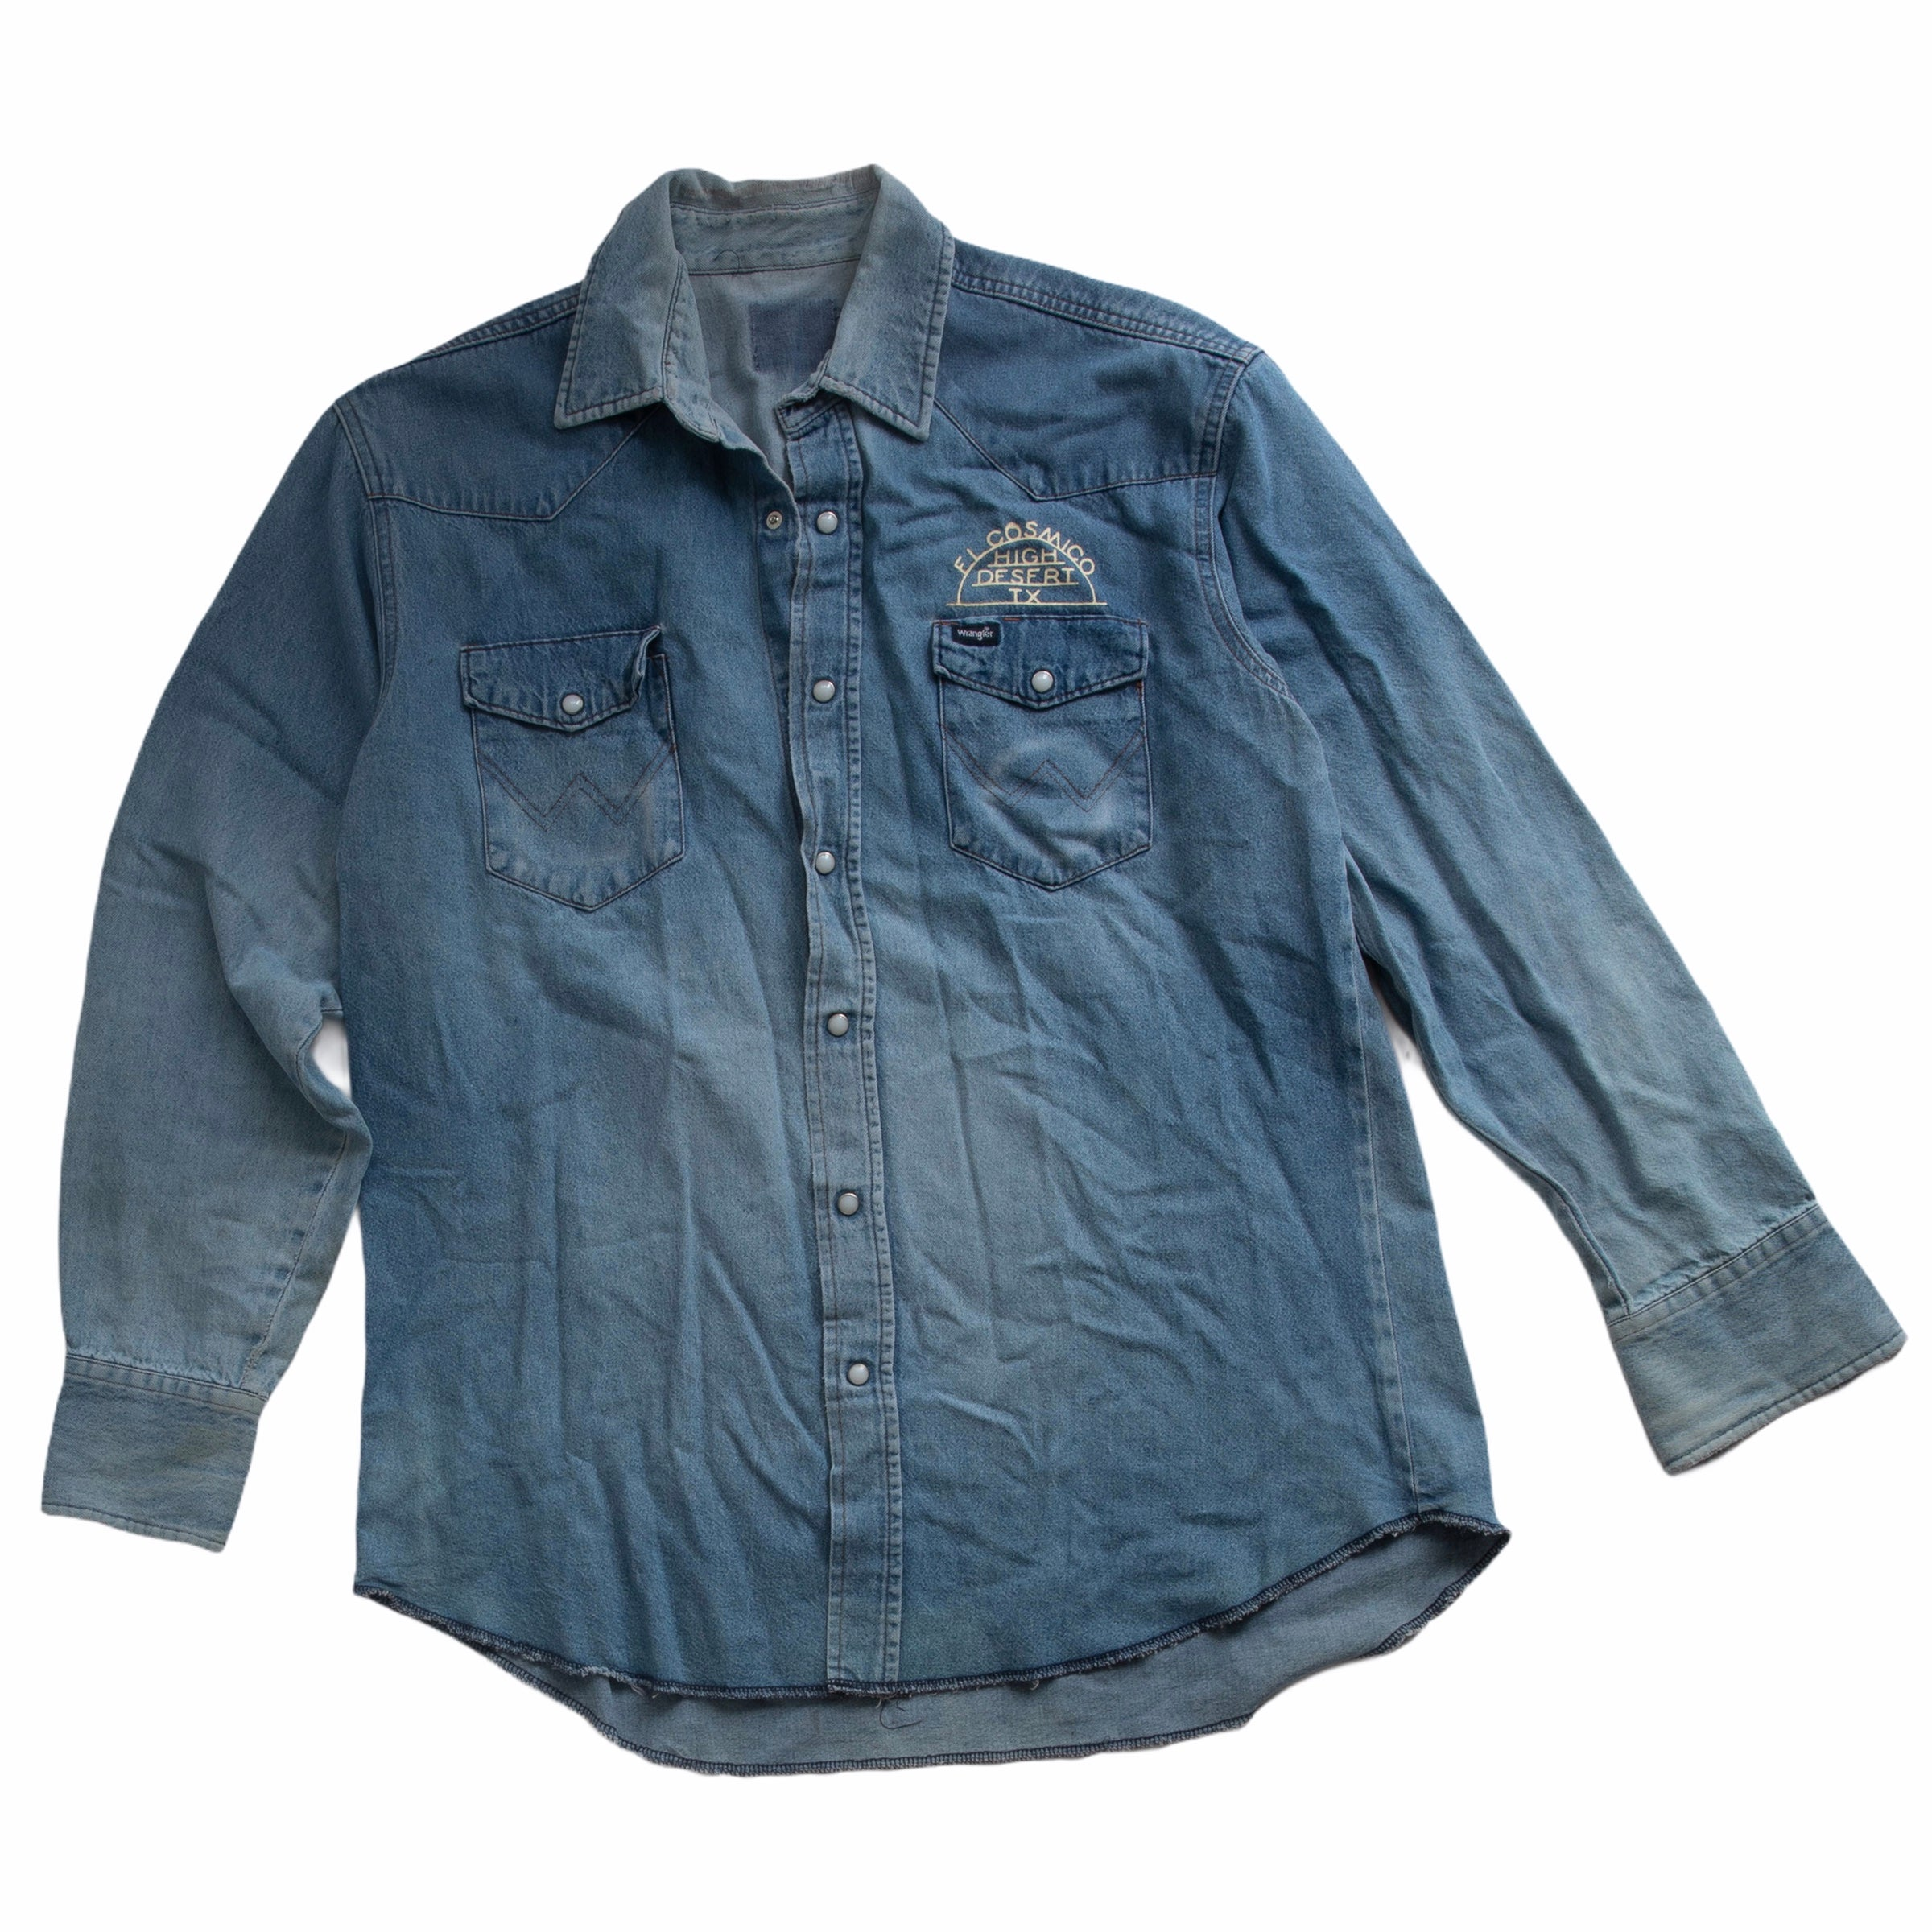 Vintage Wrangler Pearl Snap Denim Shirt 04 - Large